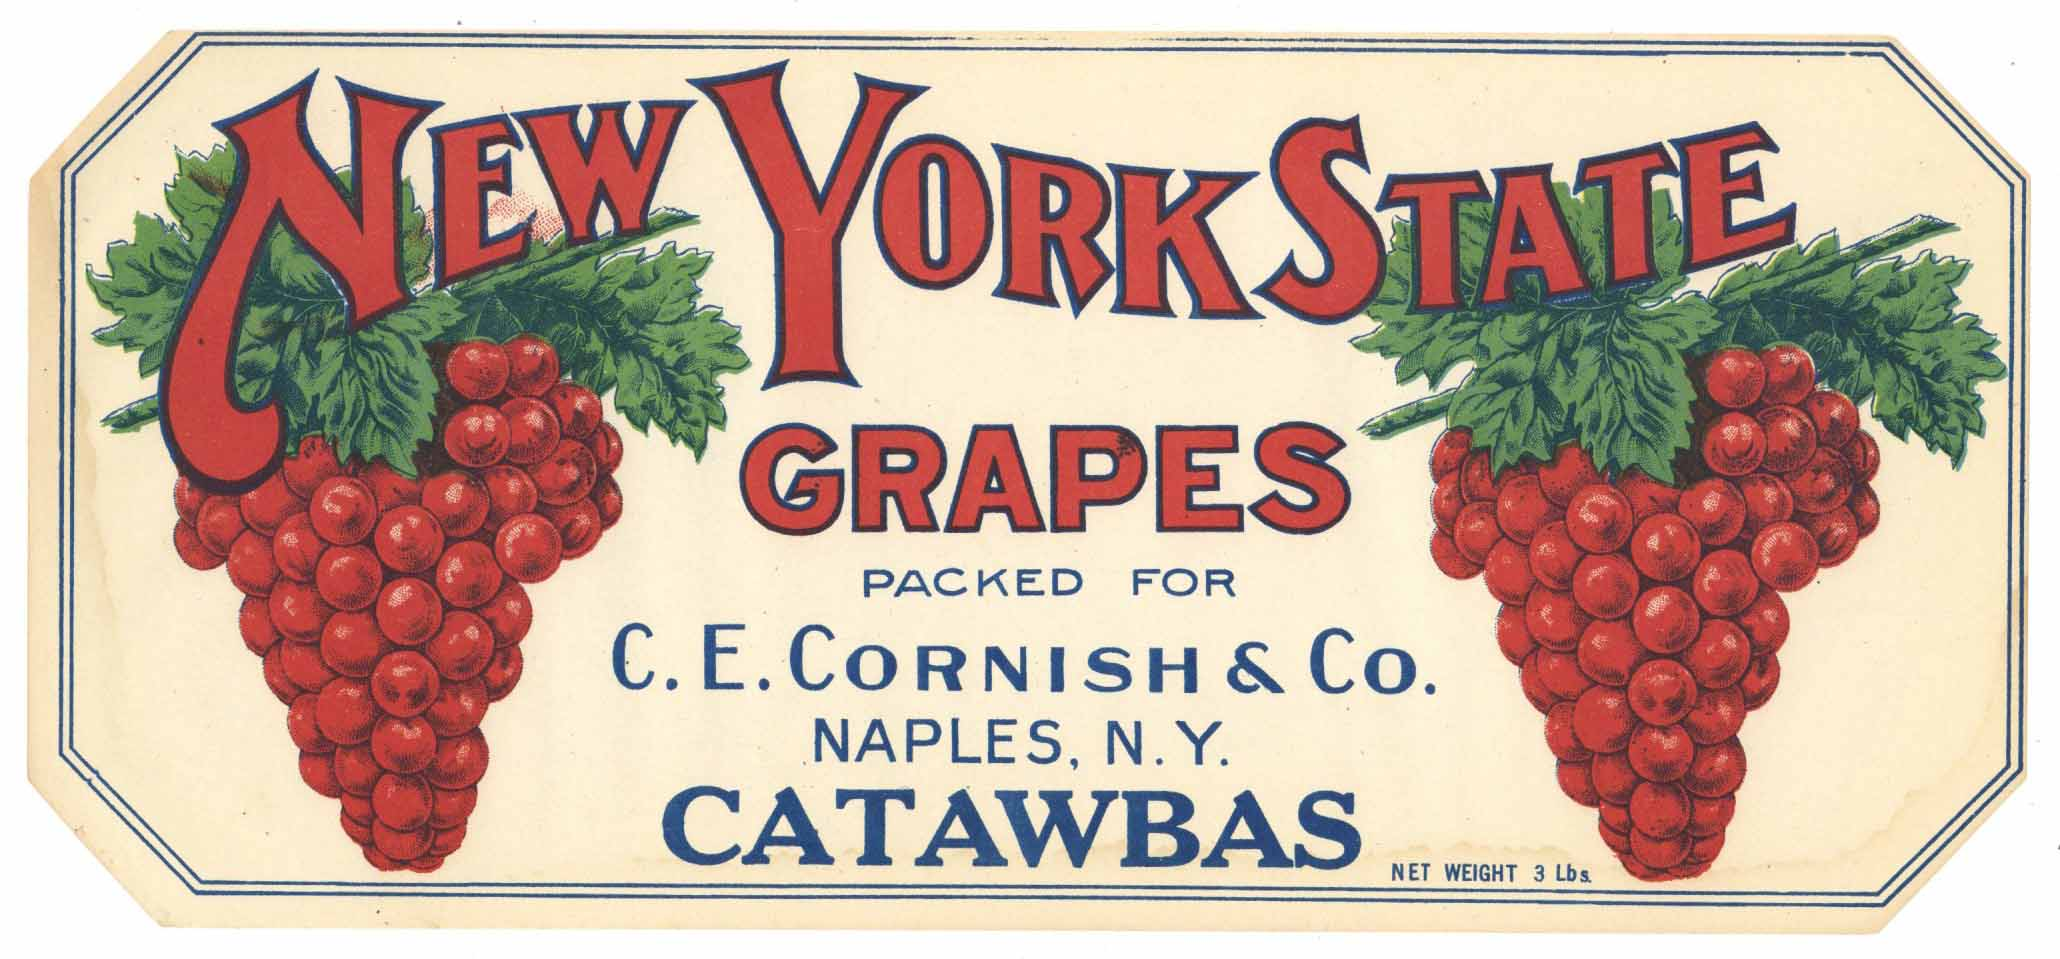 New York State Grapes Concord Choice Fruit Crate Label Edward Lasher Tivoli NY